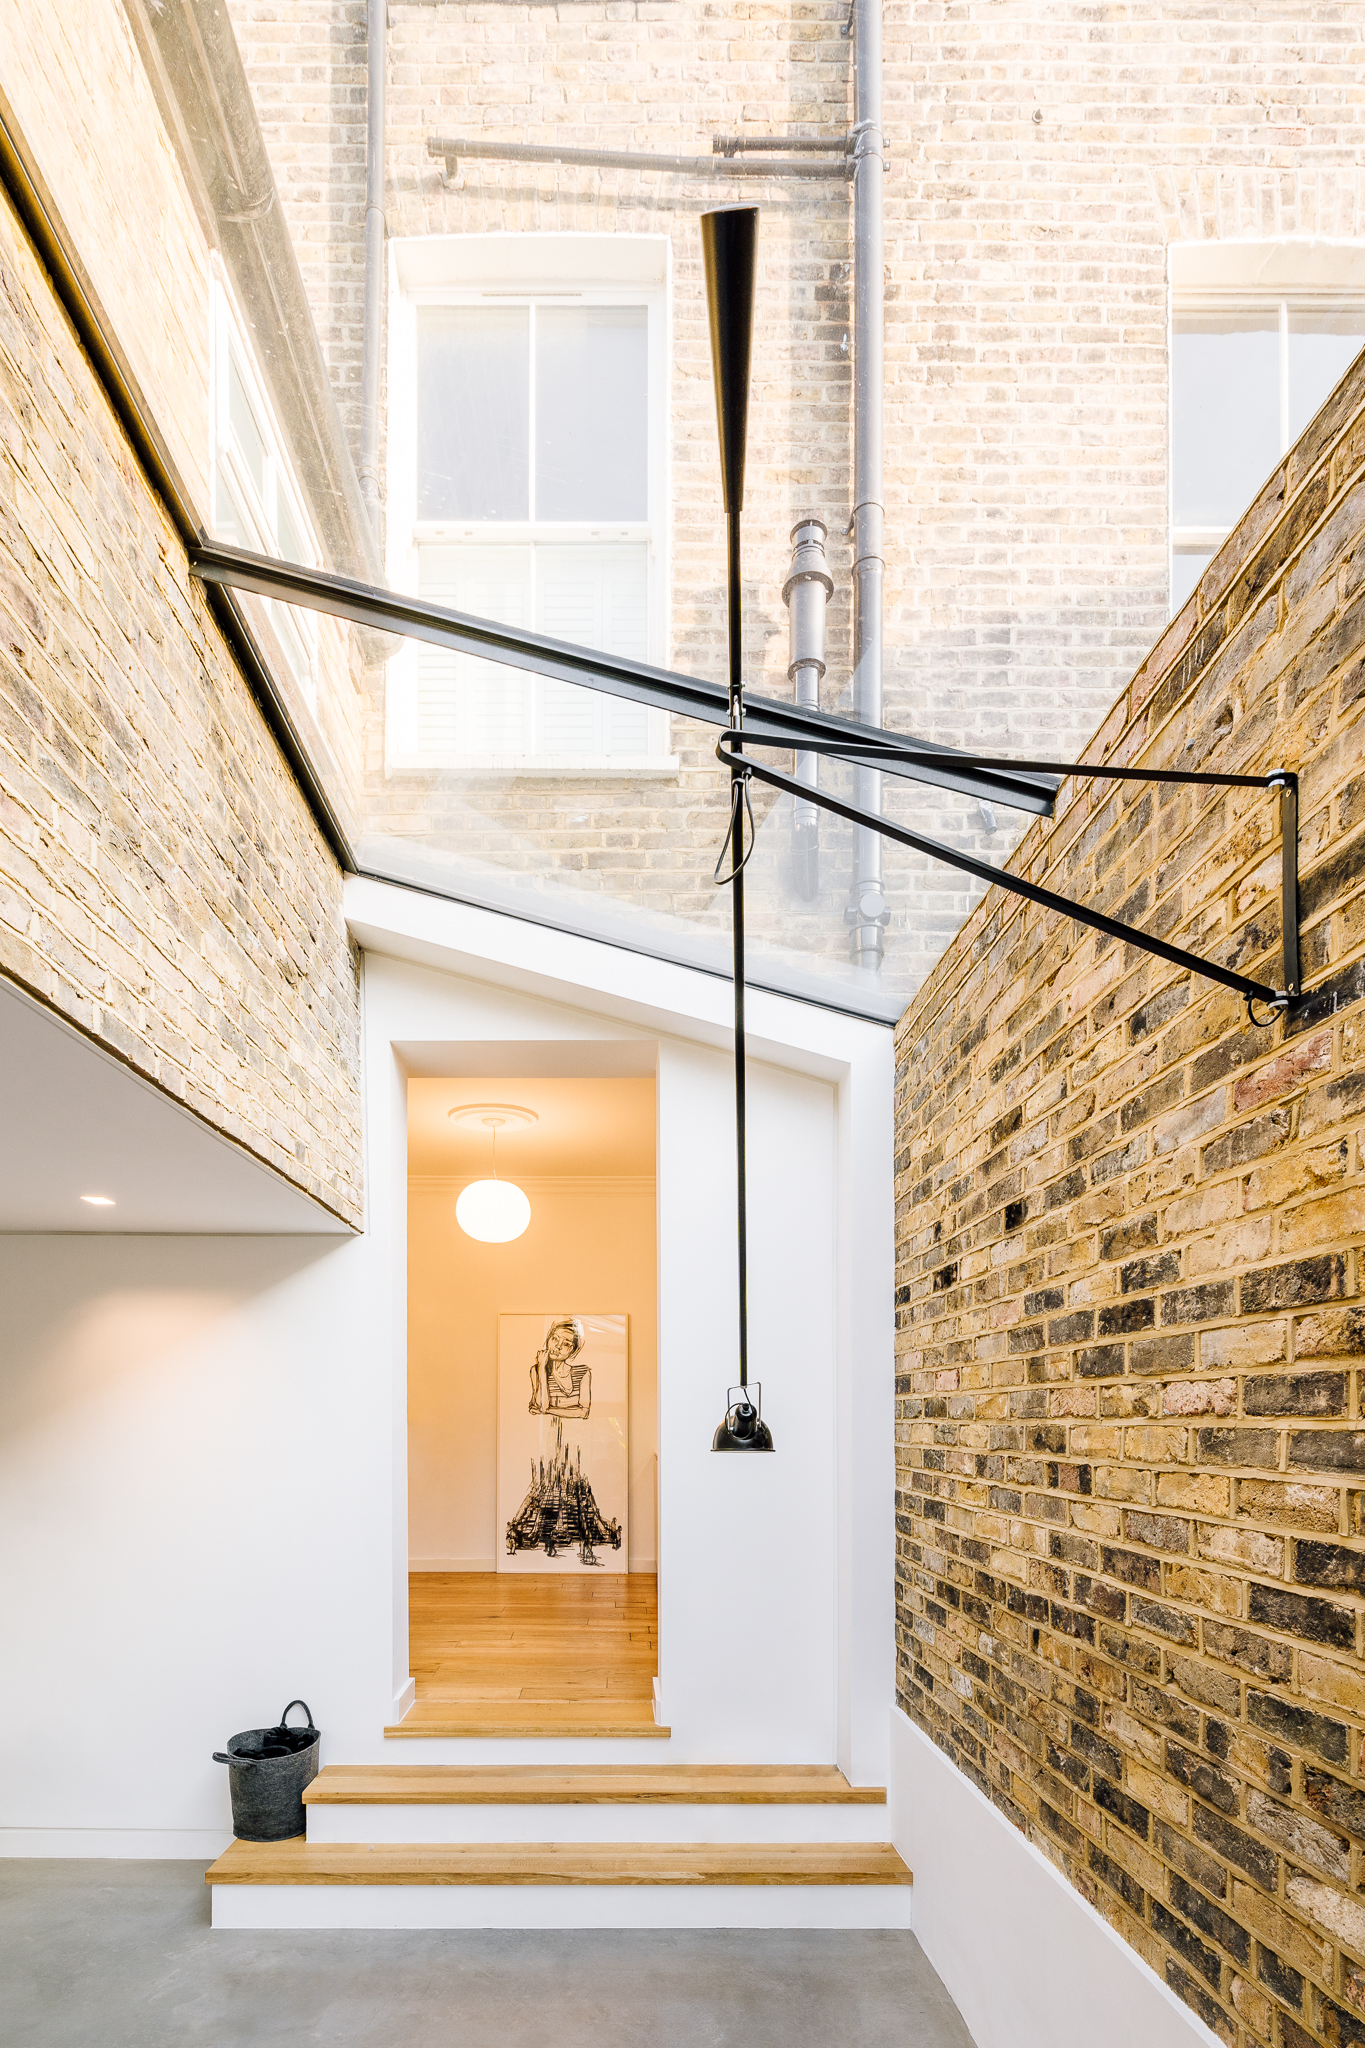 House extension by Material Works